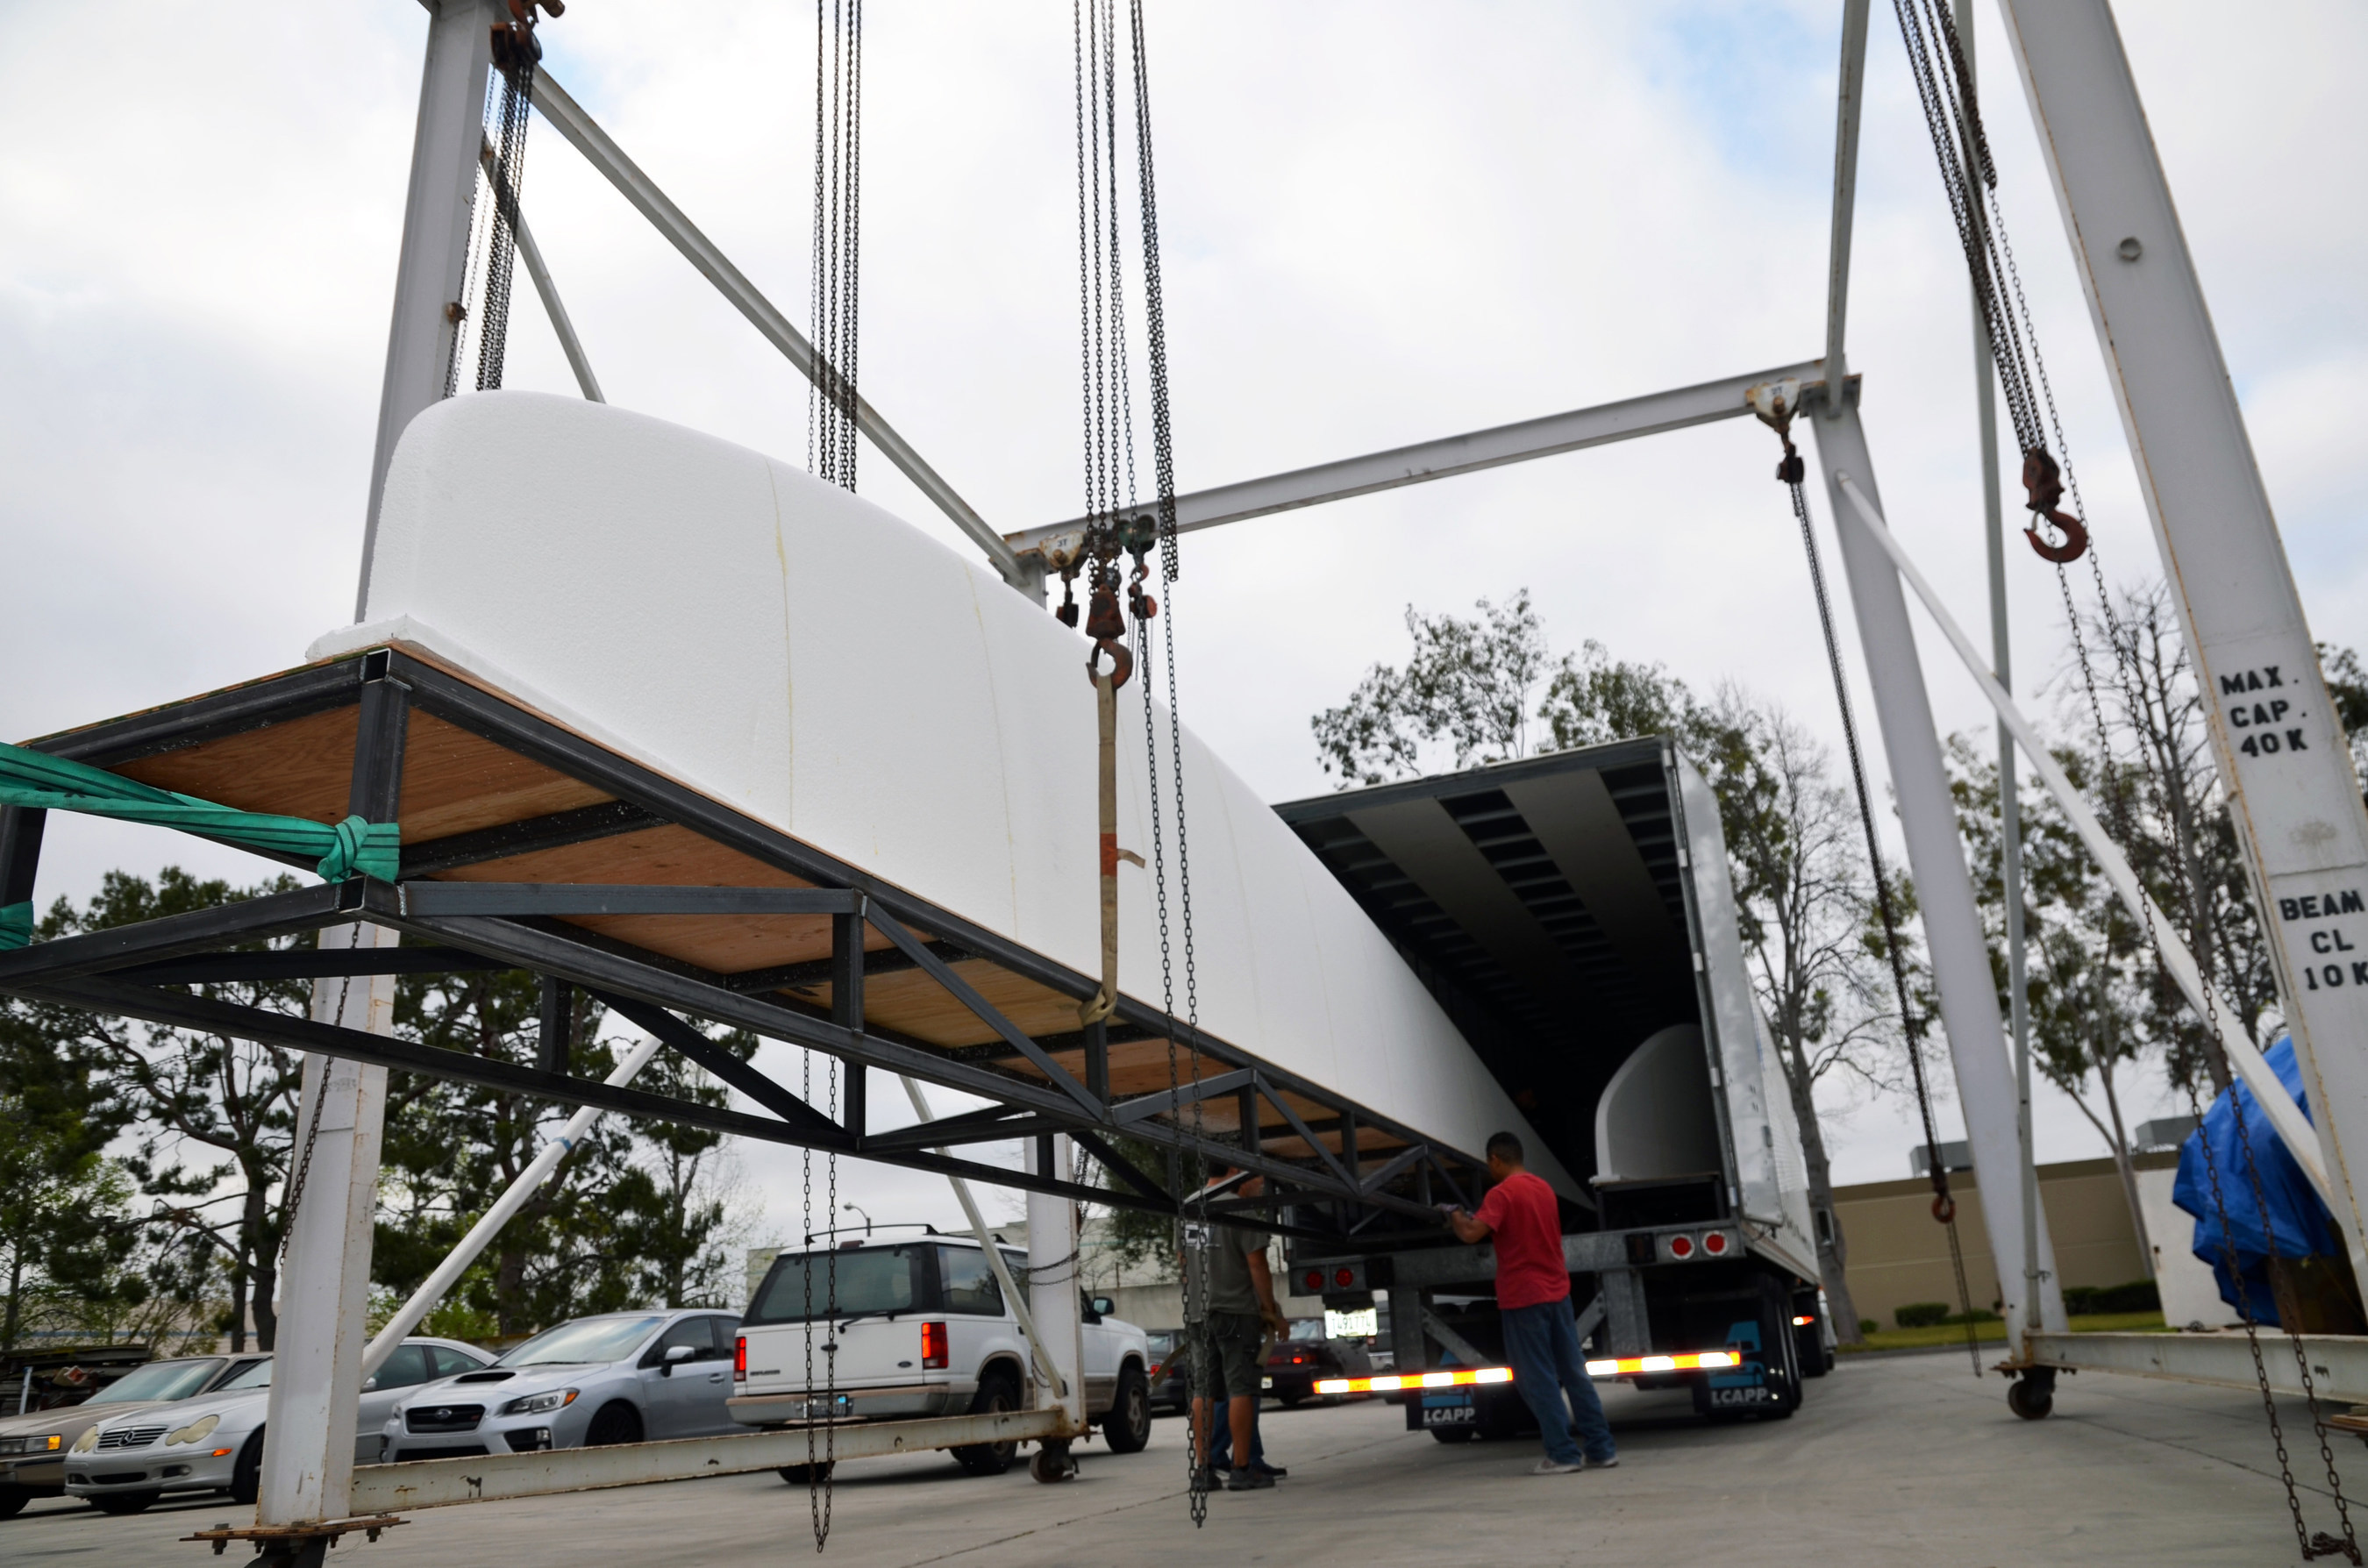 """The surfboard for Huntington Beach's record-breaking attempt is 42' 1/4"""" long, 11' 1"""" wide and 16"""" thick. The two halves of the board arrived in Orange County on April 20, 2015, from mouldCAM in Rhode Island via tractor-trailer."""